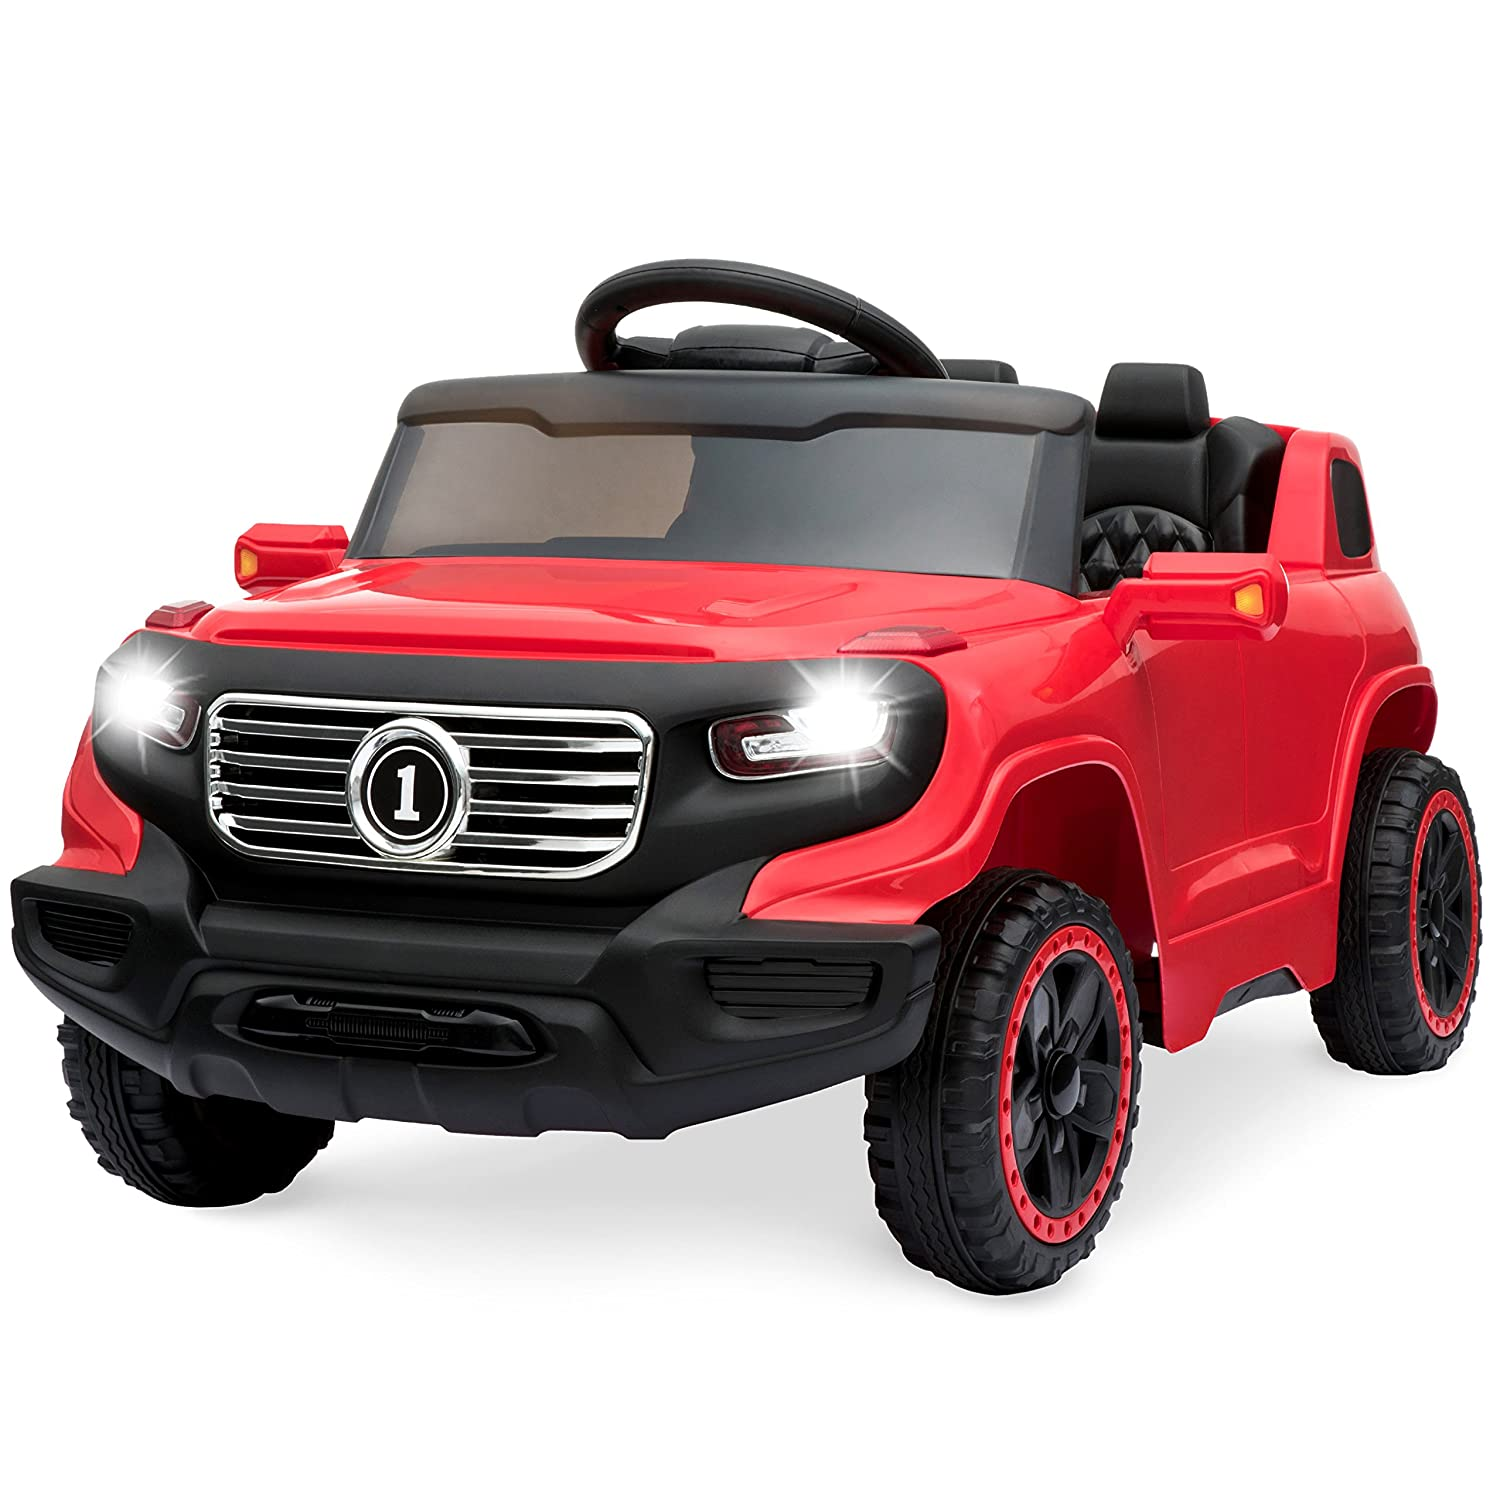 Best Choice Products 6V Kids Ride-On Car Truck w/ Parent Control, 3 Speeds, LED Headlights, MP3 Player, Horn - Red